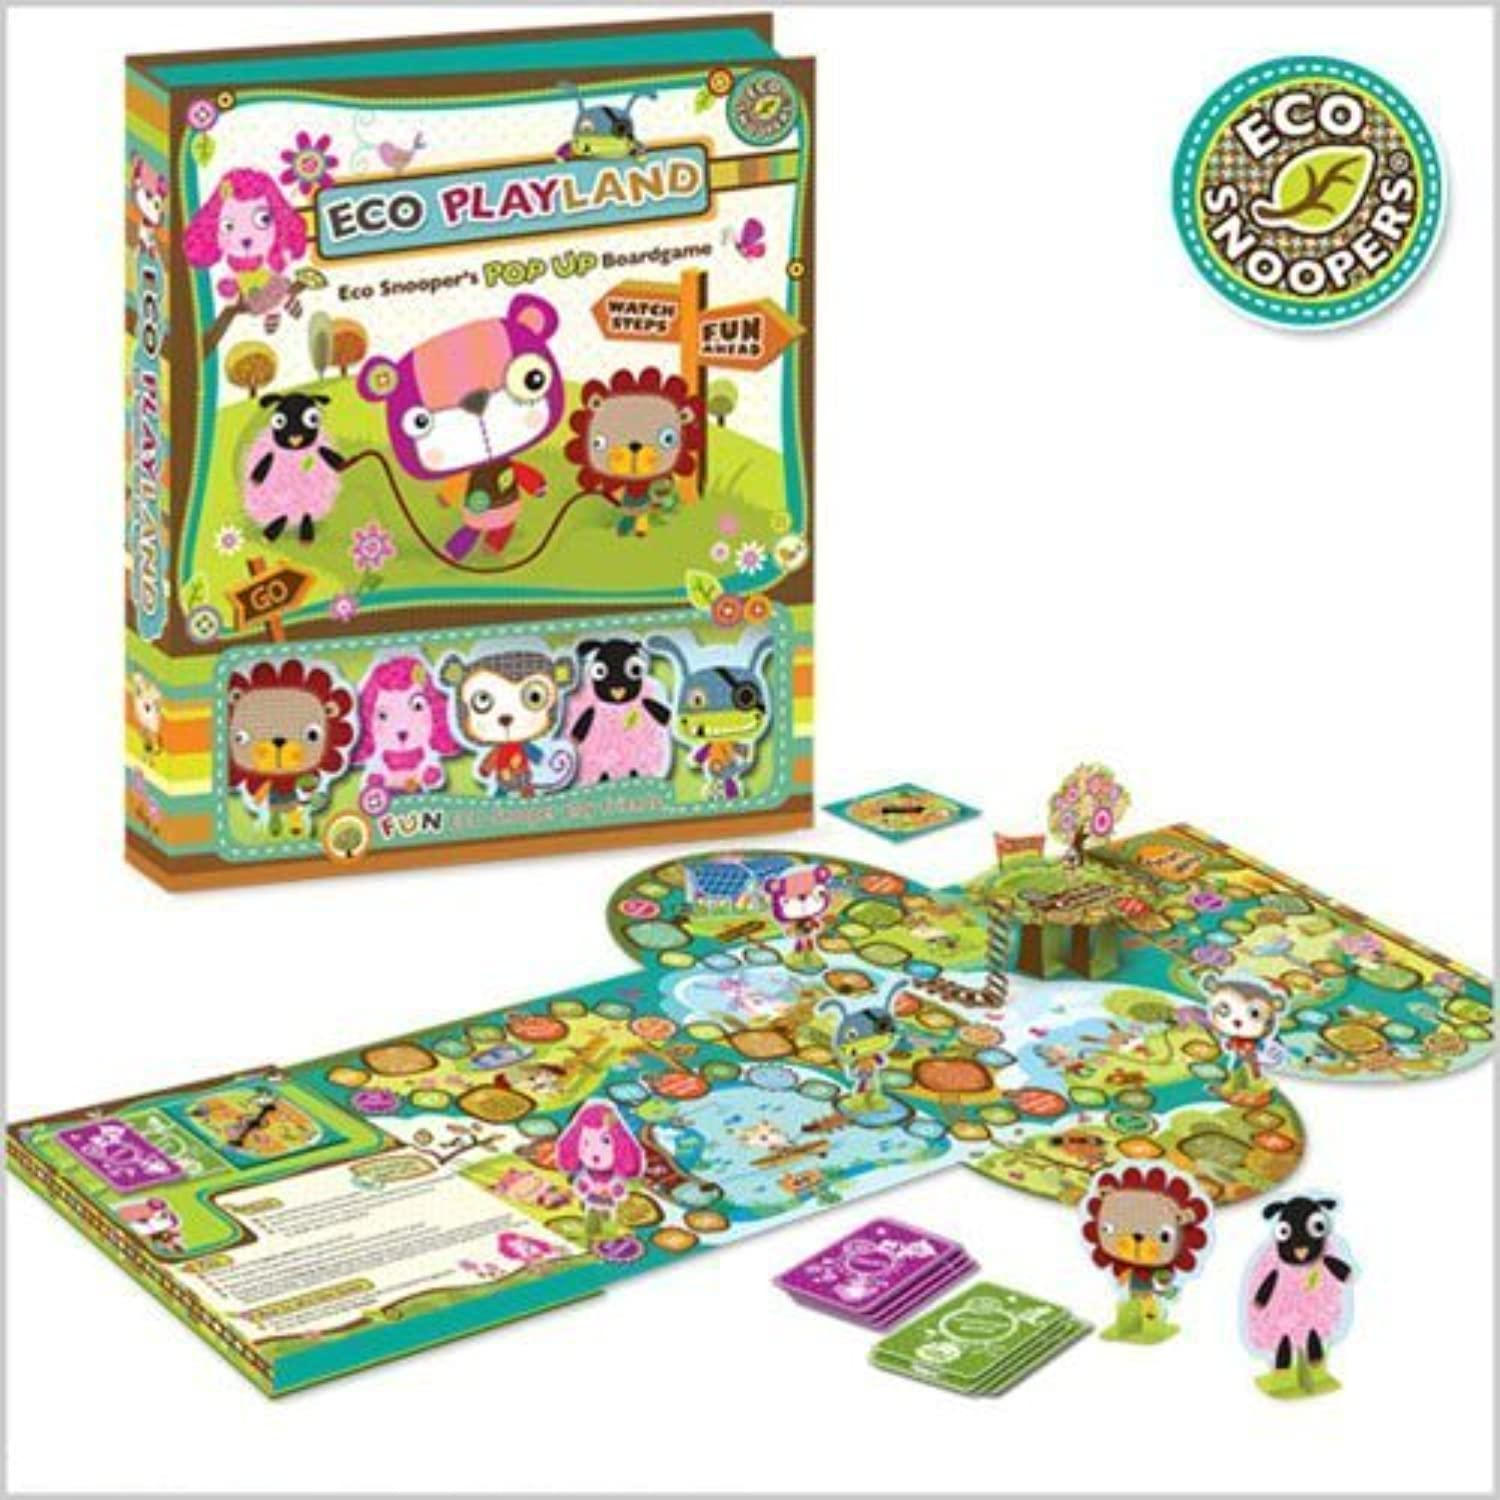 Eco Playland Eco Park Board Game by Picoware